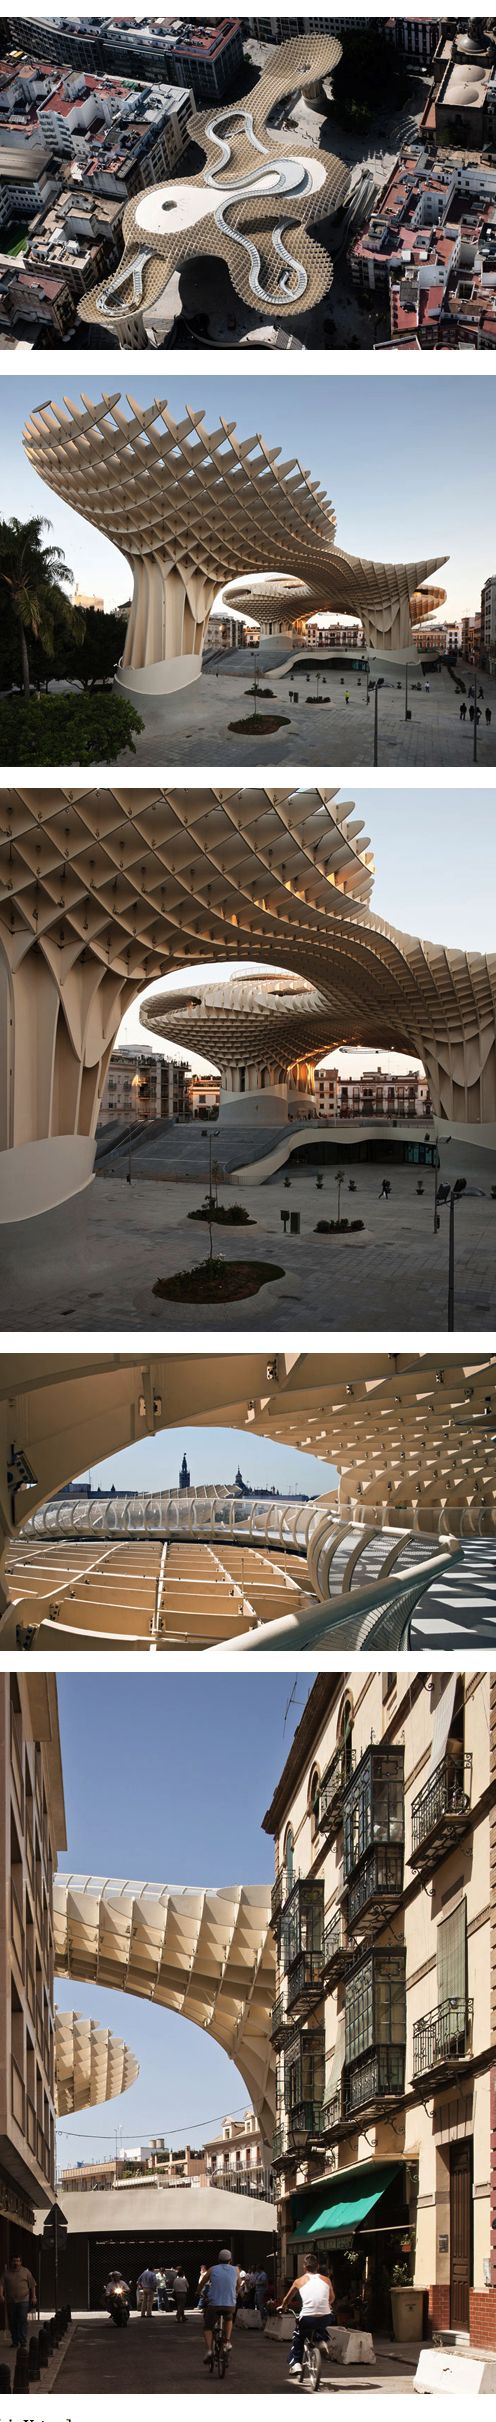 The Parasol in Seville is the world's largest wooden structure. The waffle-like crown structure was completed 4 years after a competition held by the city of Seville. (http://www.yatzer.com/Metropol-Parasol-The-World-s-Largest-Wooden-Structure-J-MAYER-H-Architects):